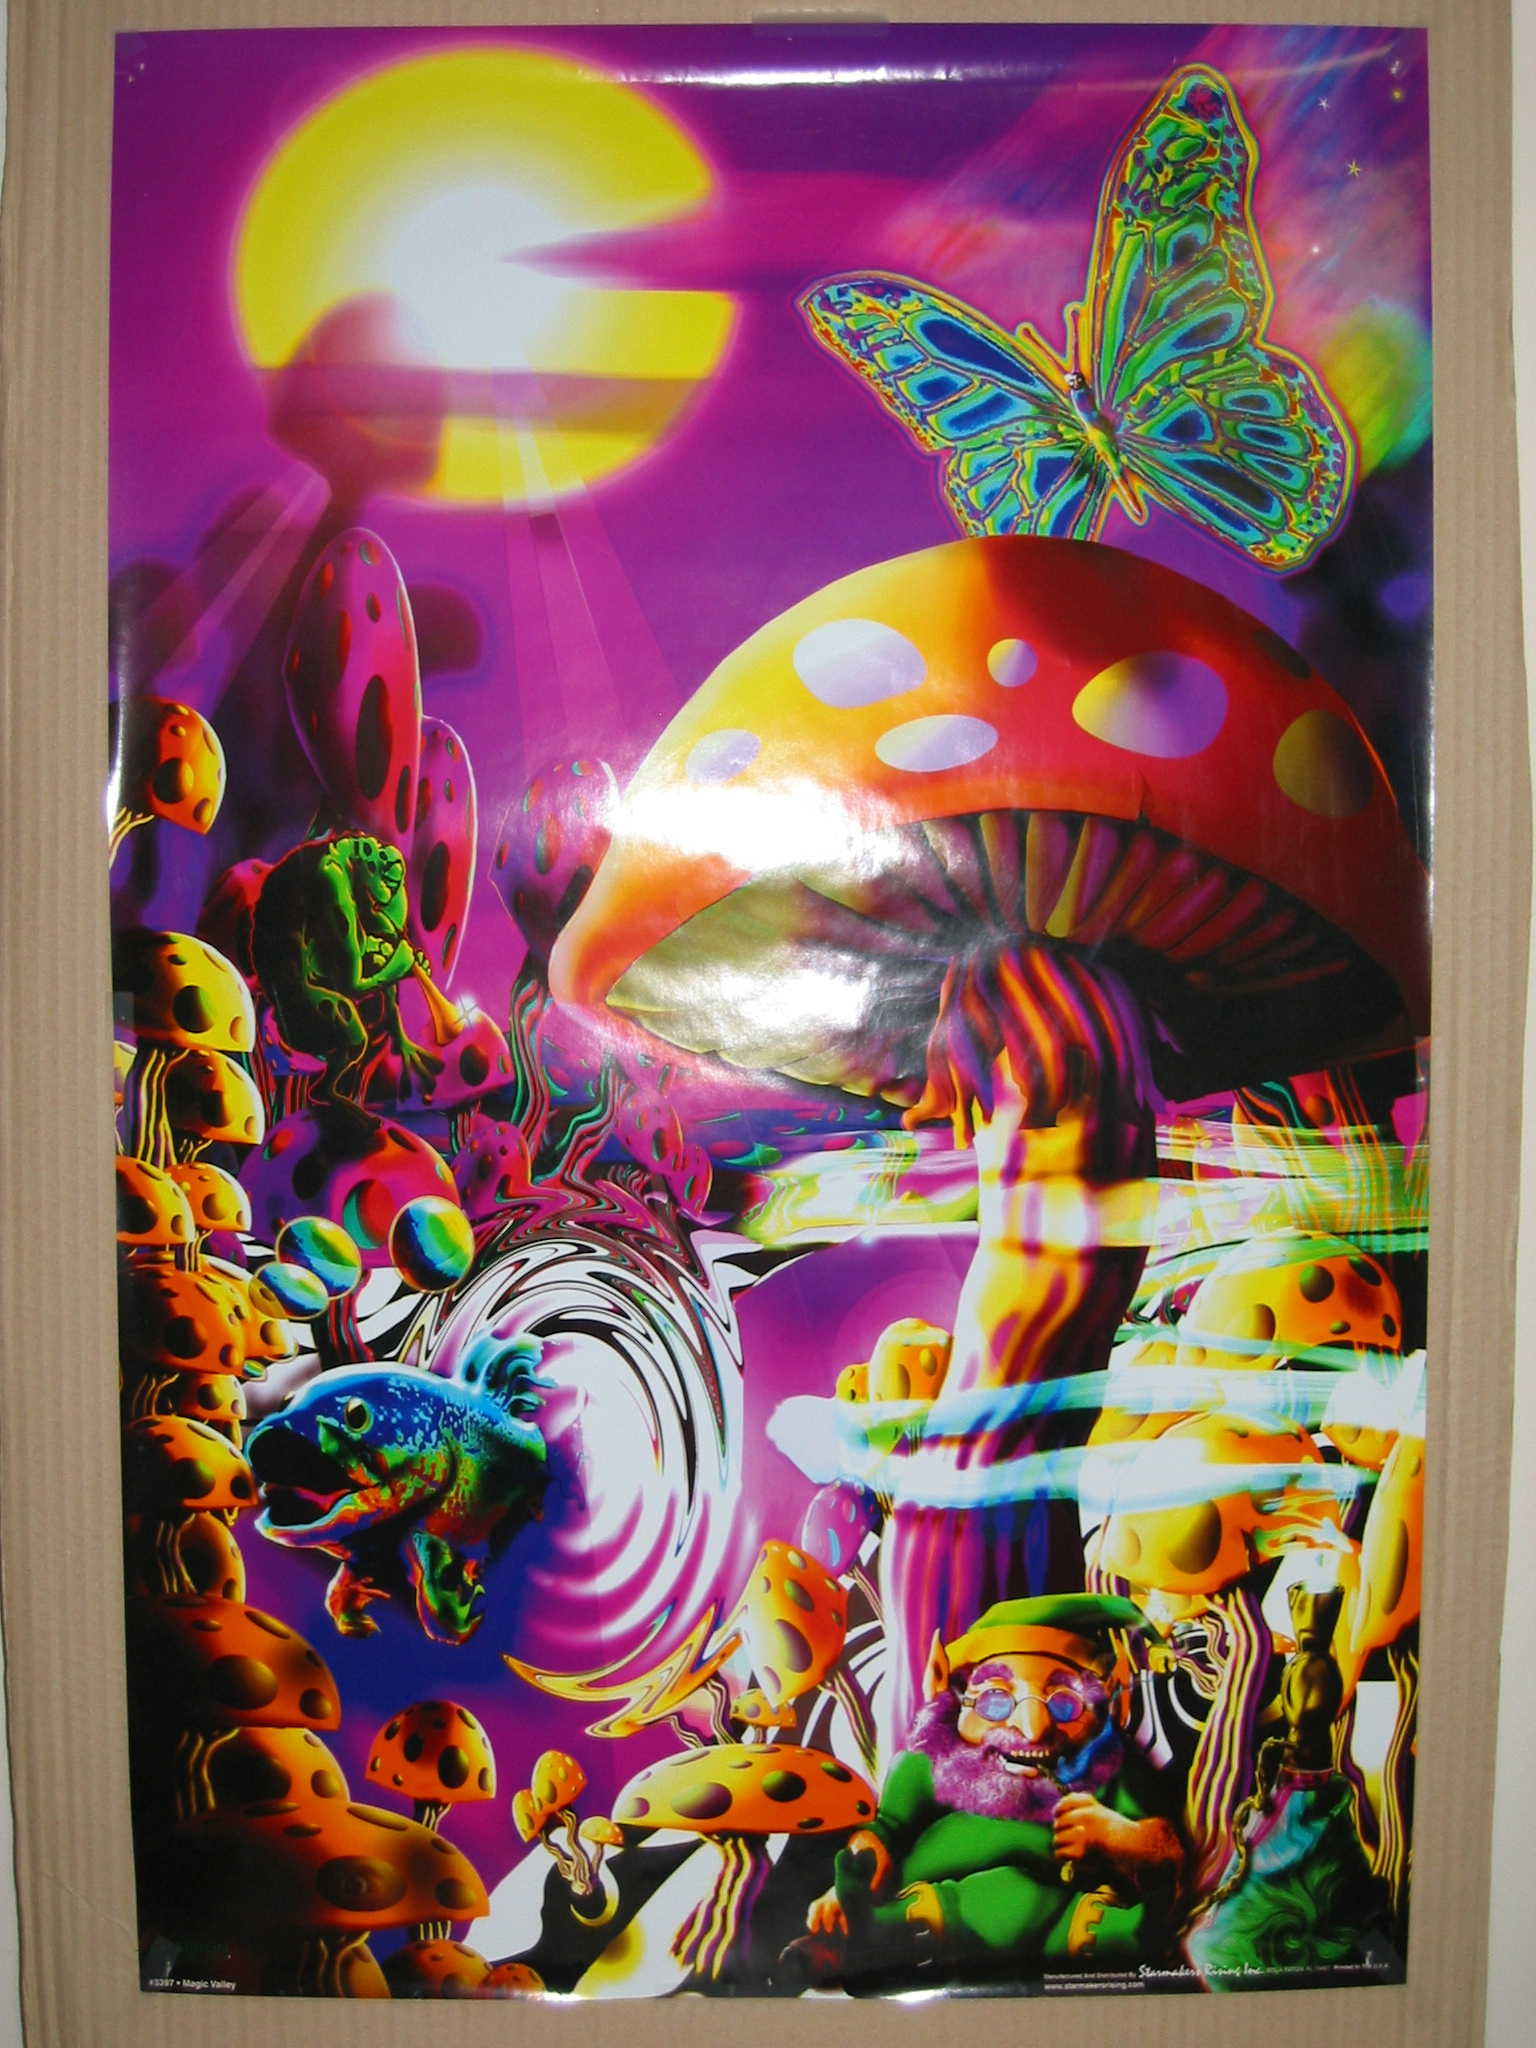 Poster 1 jpg. Gearing up for trip in 6 weeks seeking tips toys Page 2